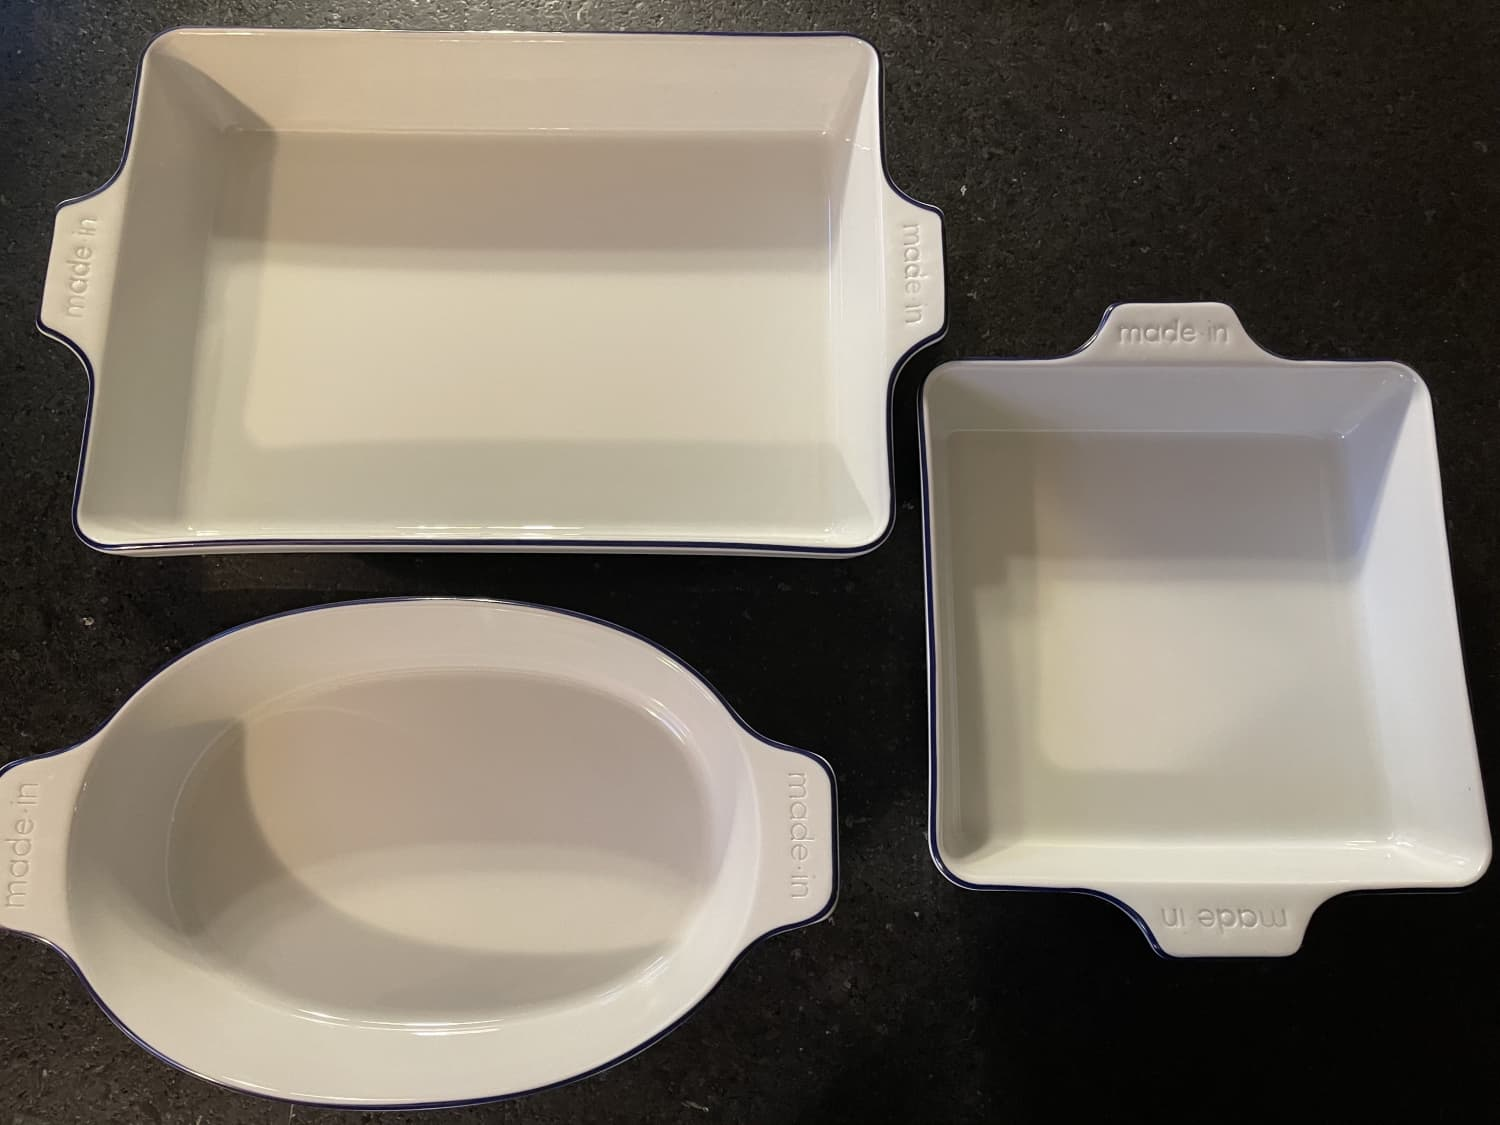 I Tried Made In's Beautiful, Brand-New Bakeware — Here's My Honest Review